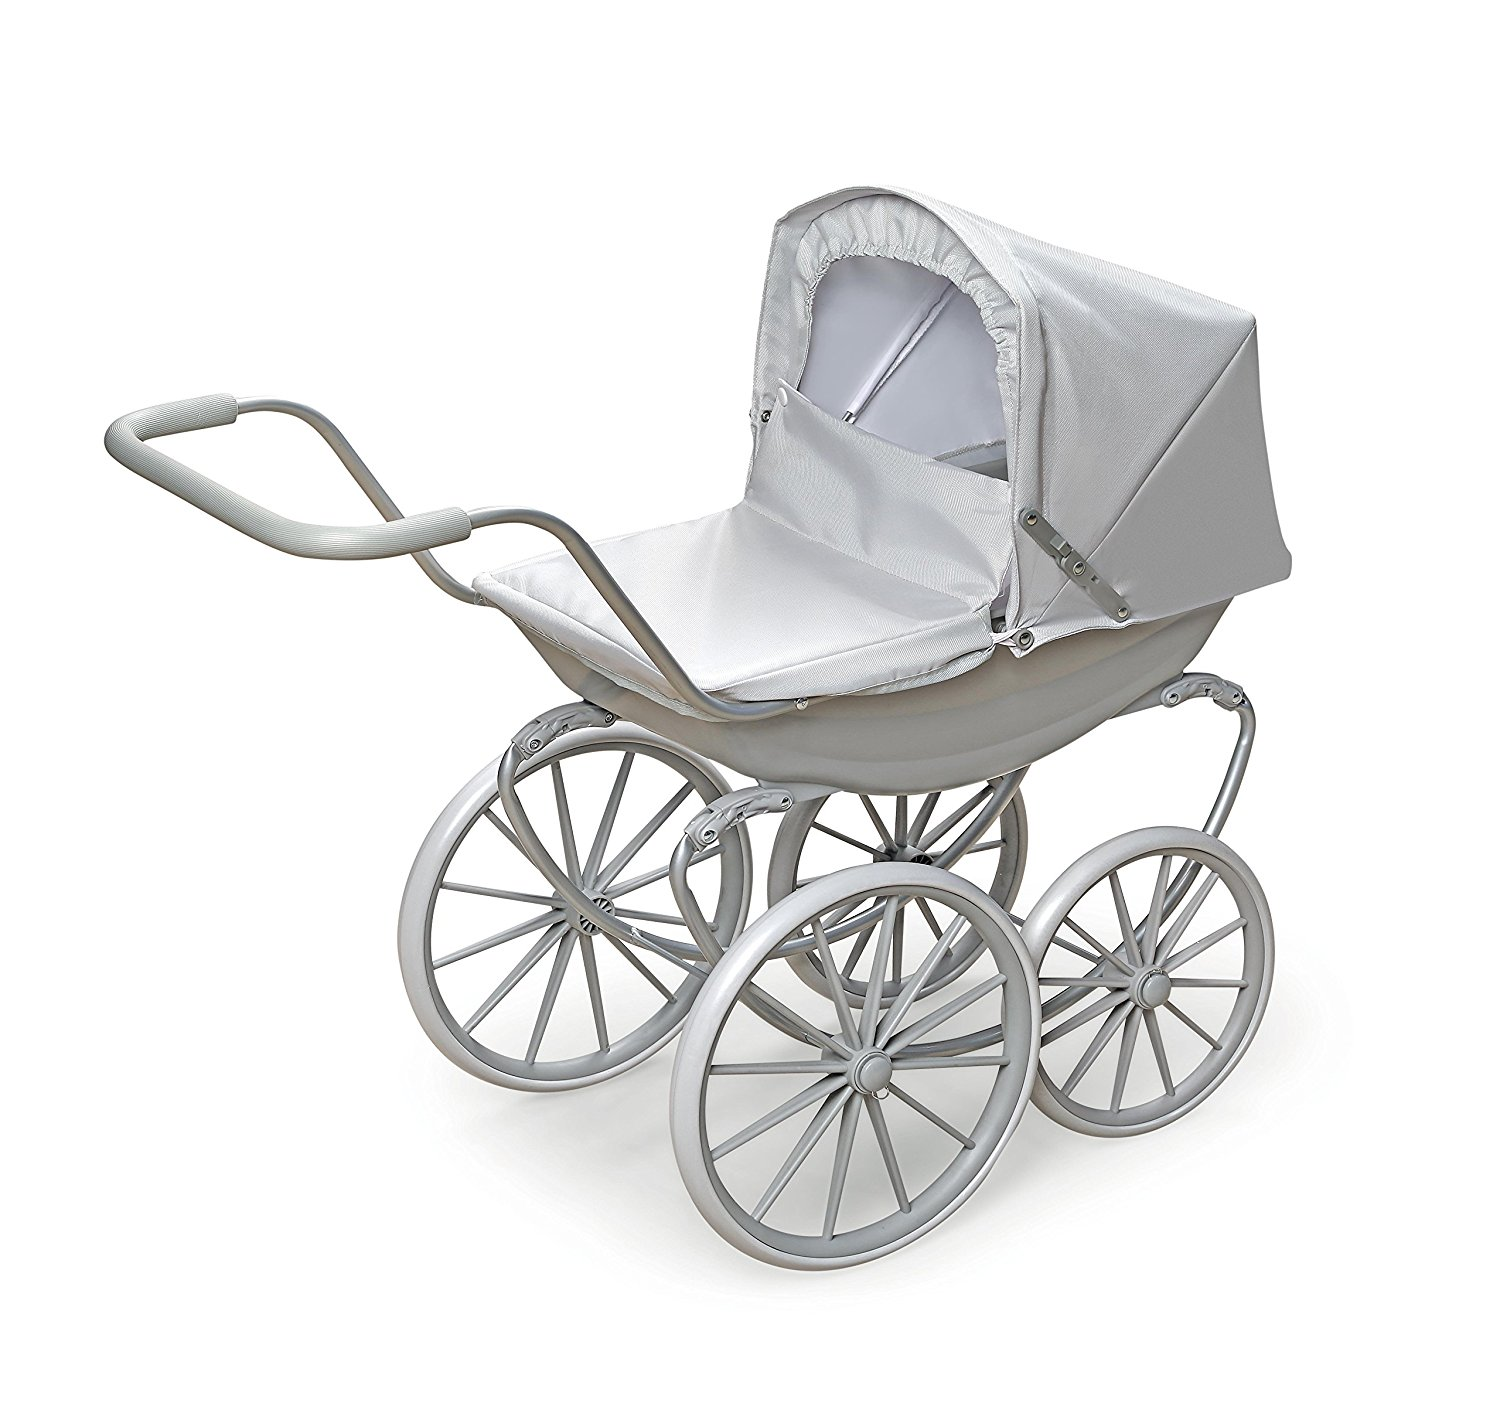 Badger Basket London Doll Pram ,fits American Girl dolls, Gray